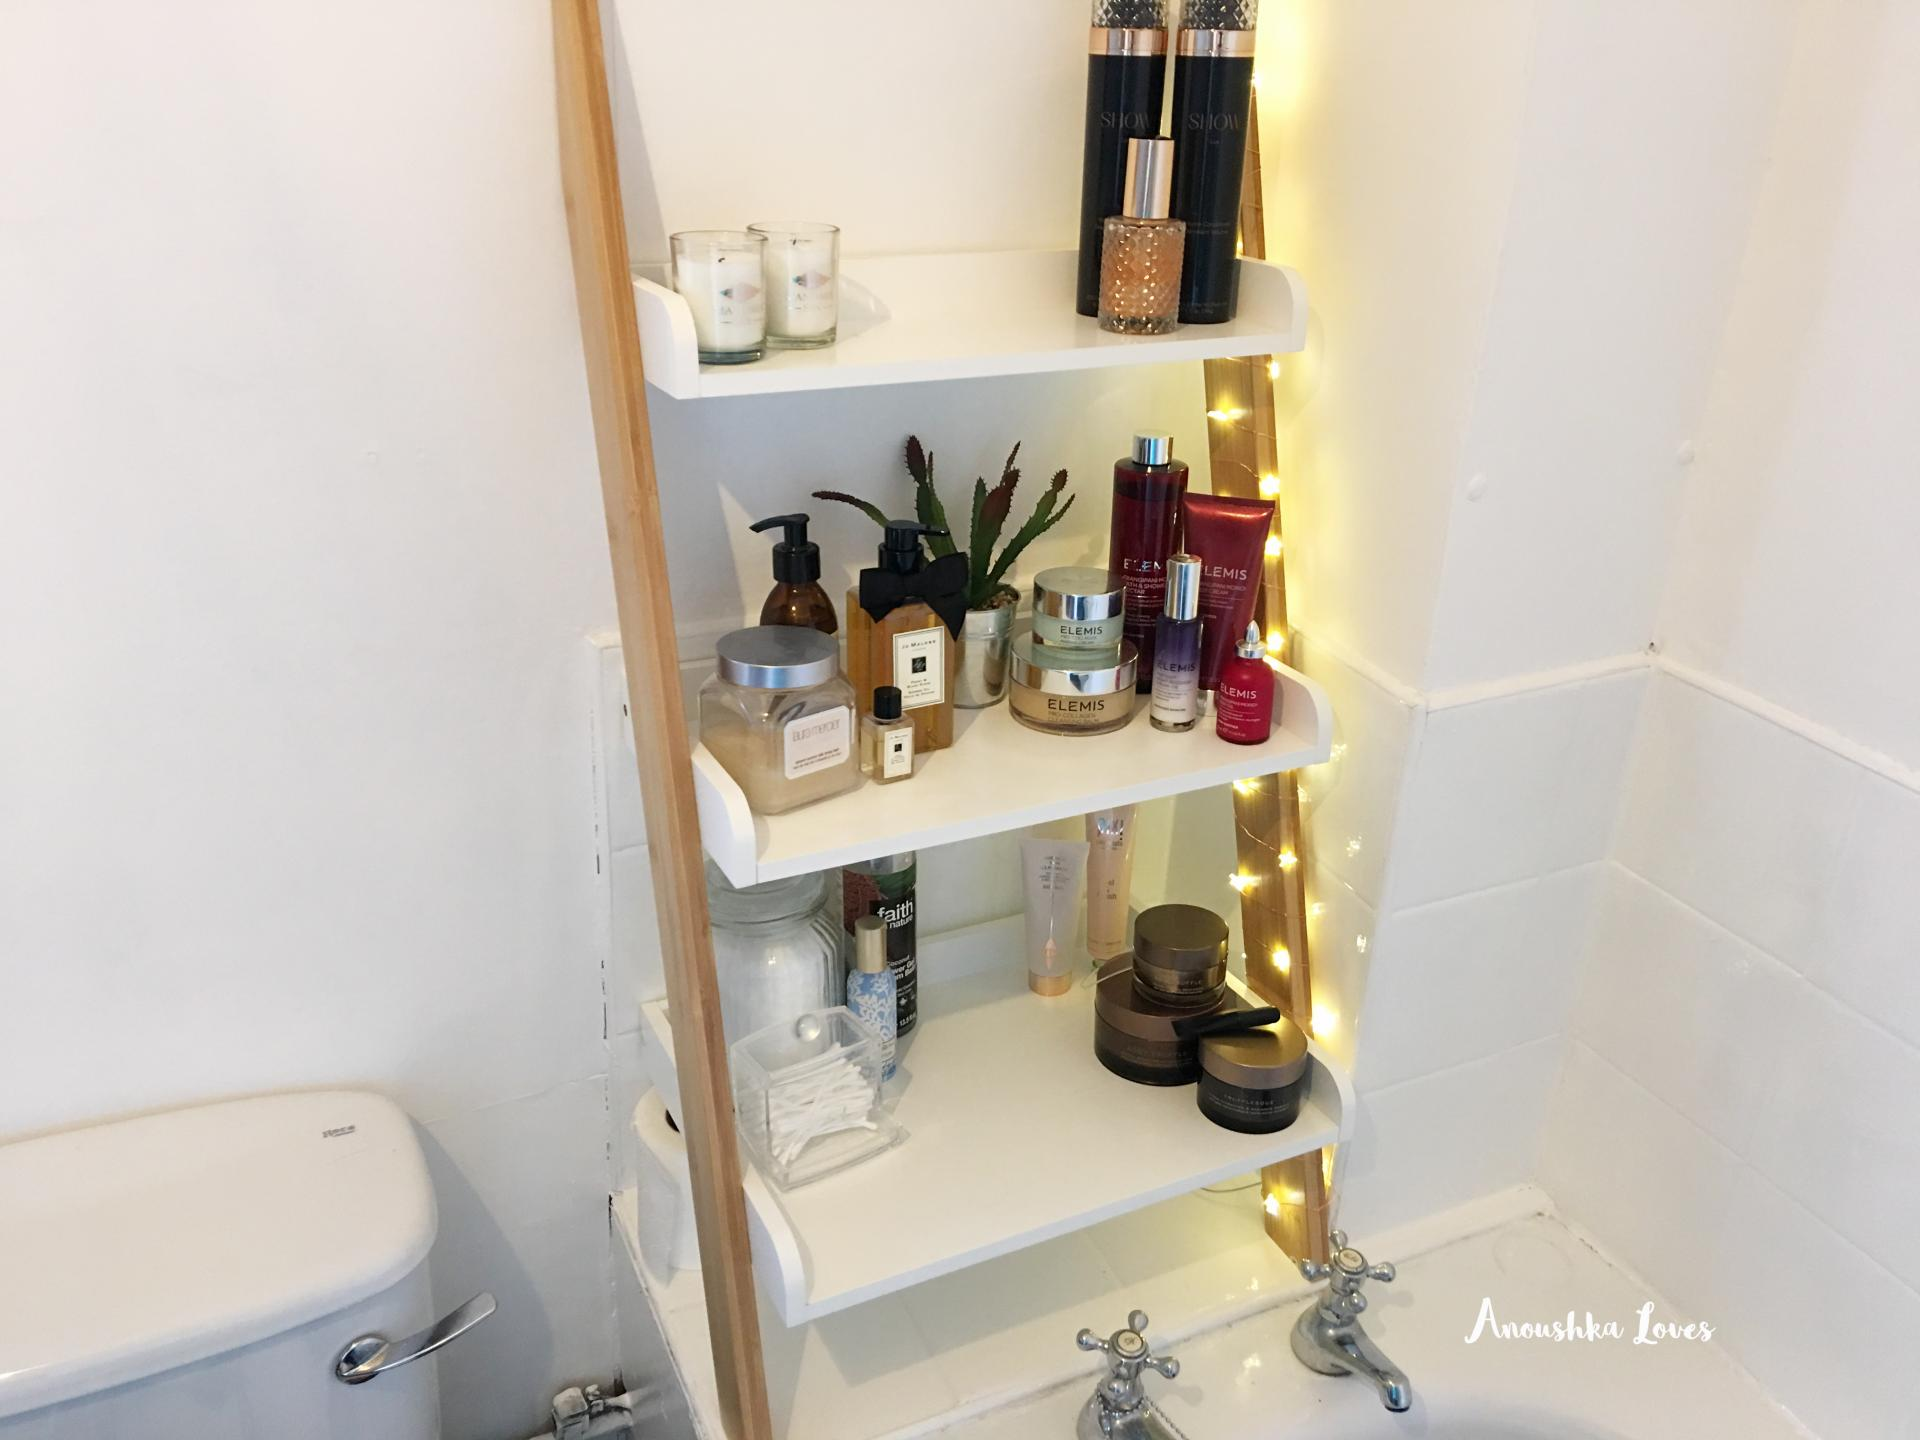 Redecorating - The Bathroom Project